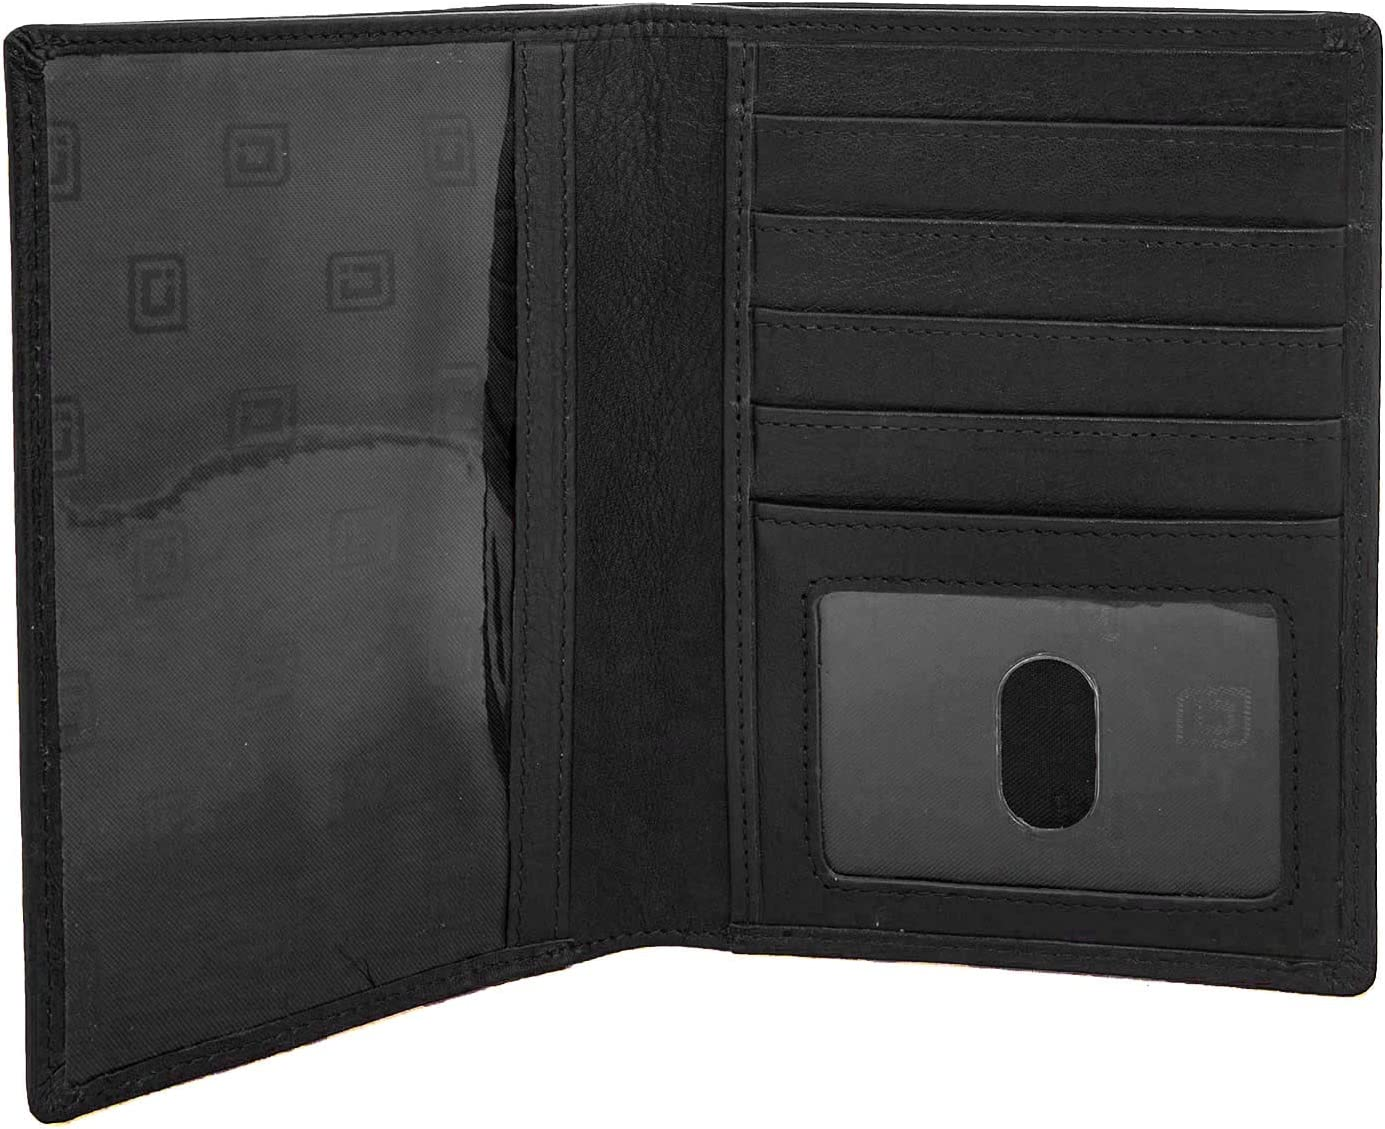 The  White Black and Copper Minimalist Leather Long Travel Wallet Passport Holder Collection